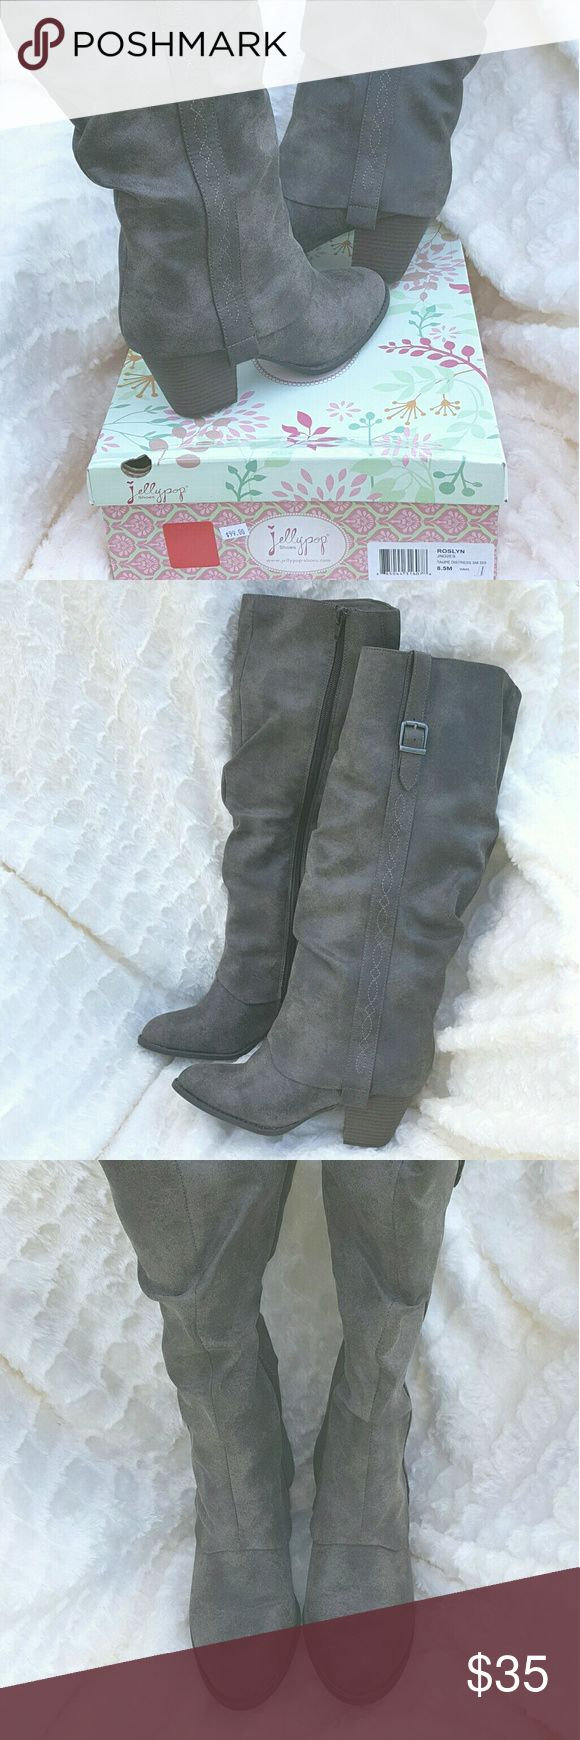 🌻SALE🌻  Jellypop Knee High Boots New in box- Roslyn Jellypop boot. Color is stated to be Taupe distressed but in my opinion it's more in the gray family, size 8.5 M synthetic, faux leather. Slightly distressed style, contrast stitching at the side with a buckle accent, side zipper, slouchy boot design and 3 in faux stacked heel. Any reasonable offer will be considered 😊 jellypop Shoes Heeled Boots